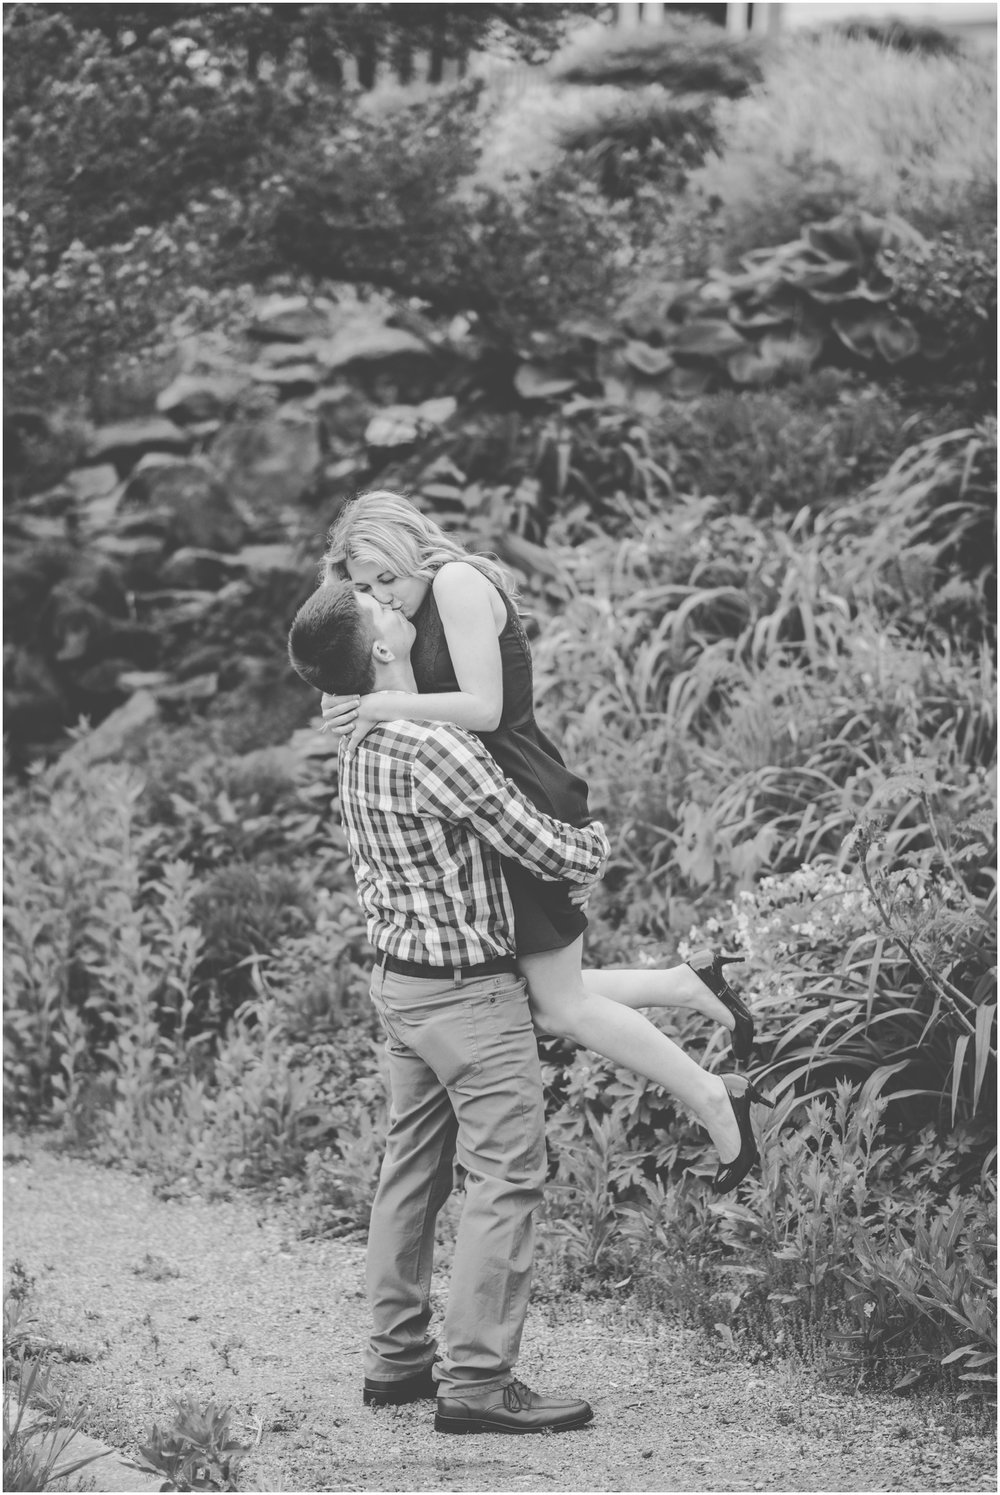 Paquette_Park_Portage_WI_Engagement_Photos_Heather_and_Derek_0029.jpg